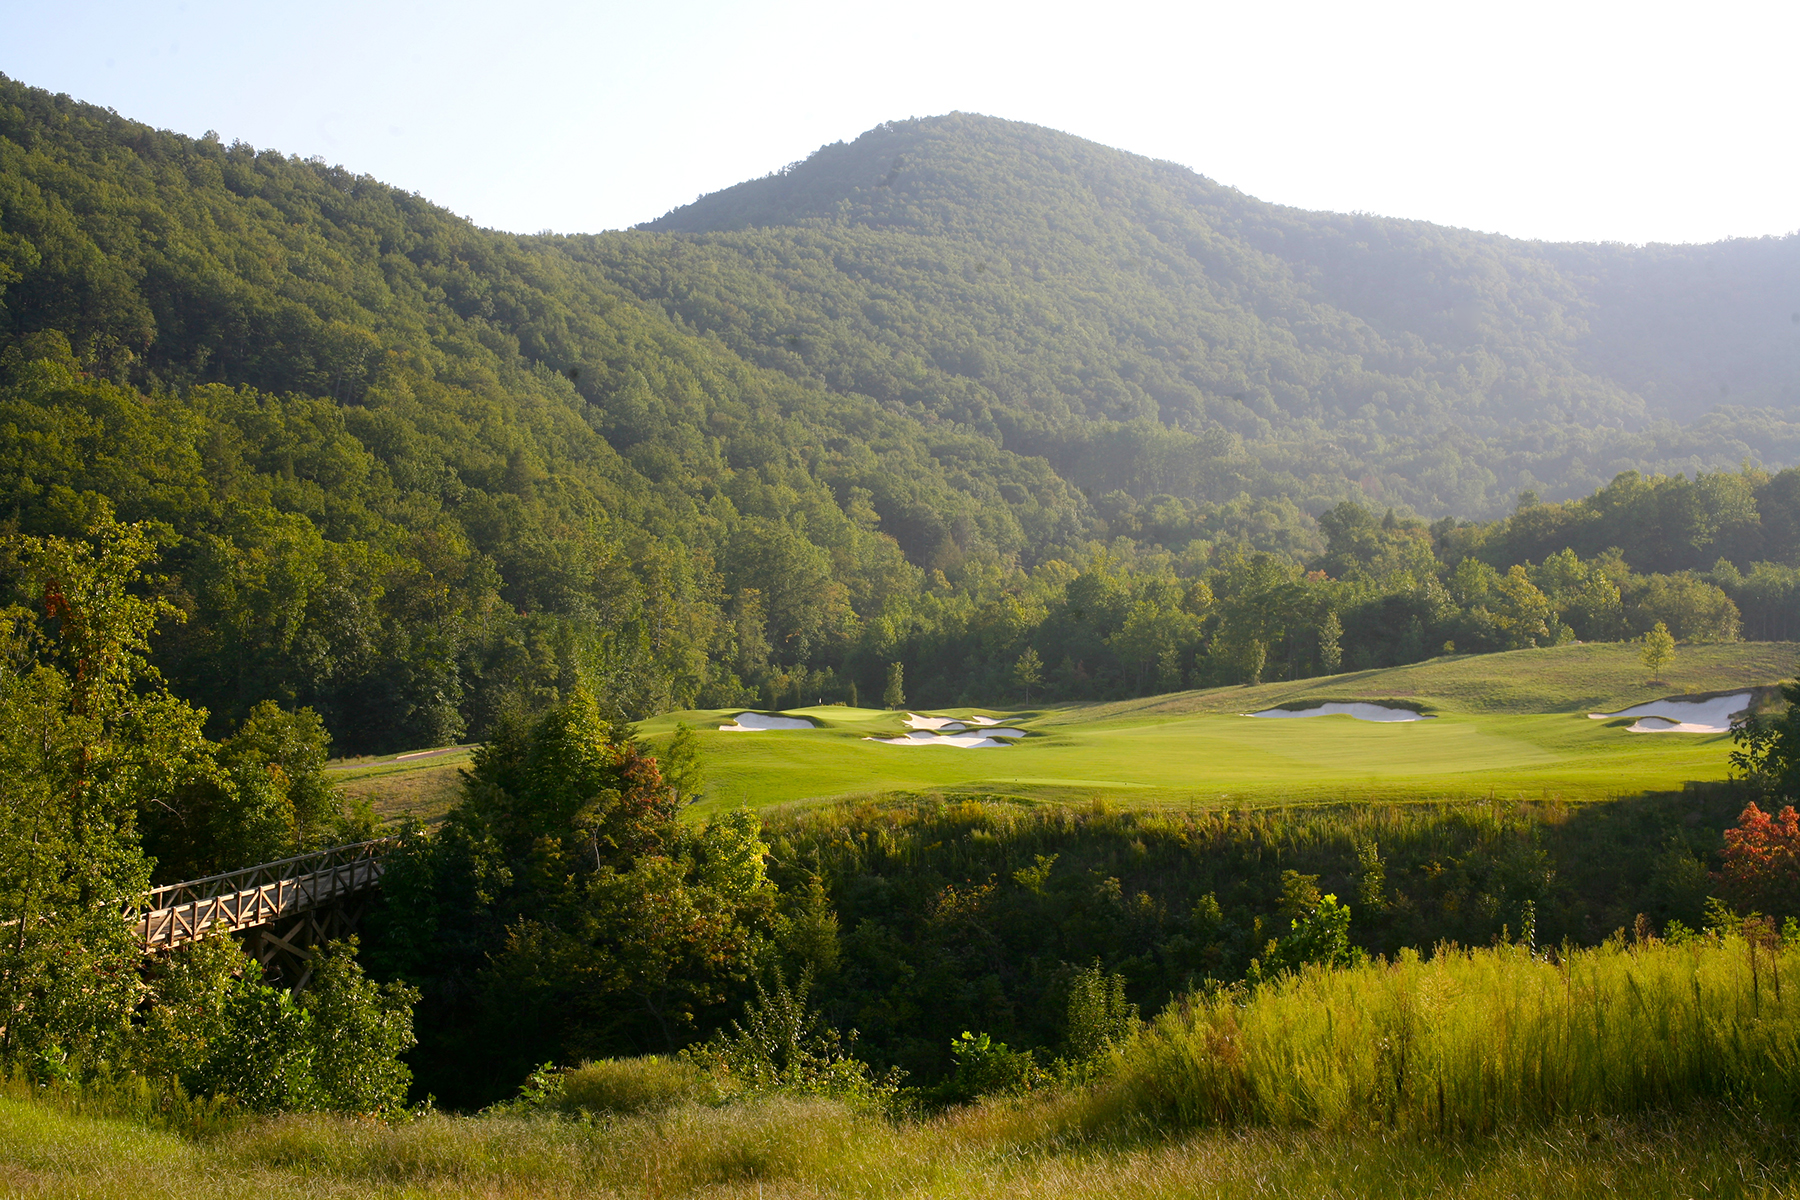 Land for Sale at MILL SPRING - BRIGHT'S CREEK 202 Cherry 202 Mill Spring, North Carolina, 28756 United States